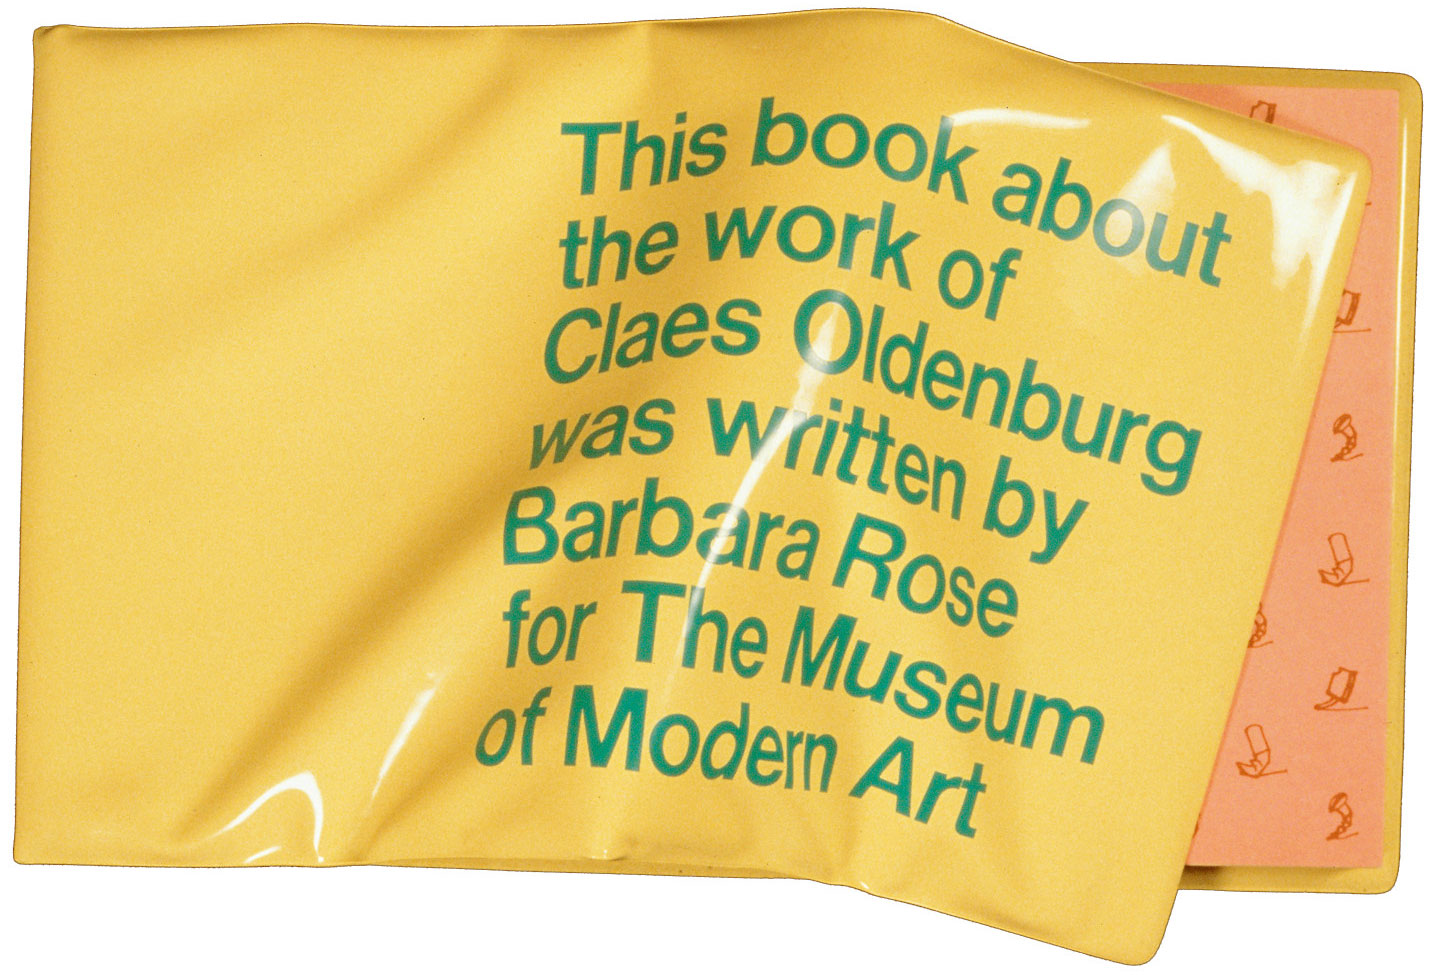 Chermayeff-and-Geismar-Claes-Oldenburg-catalogue-1970